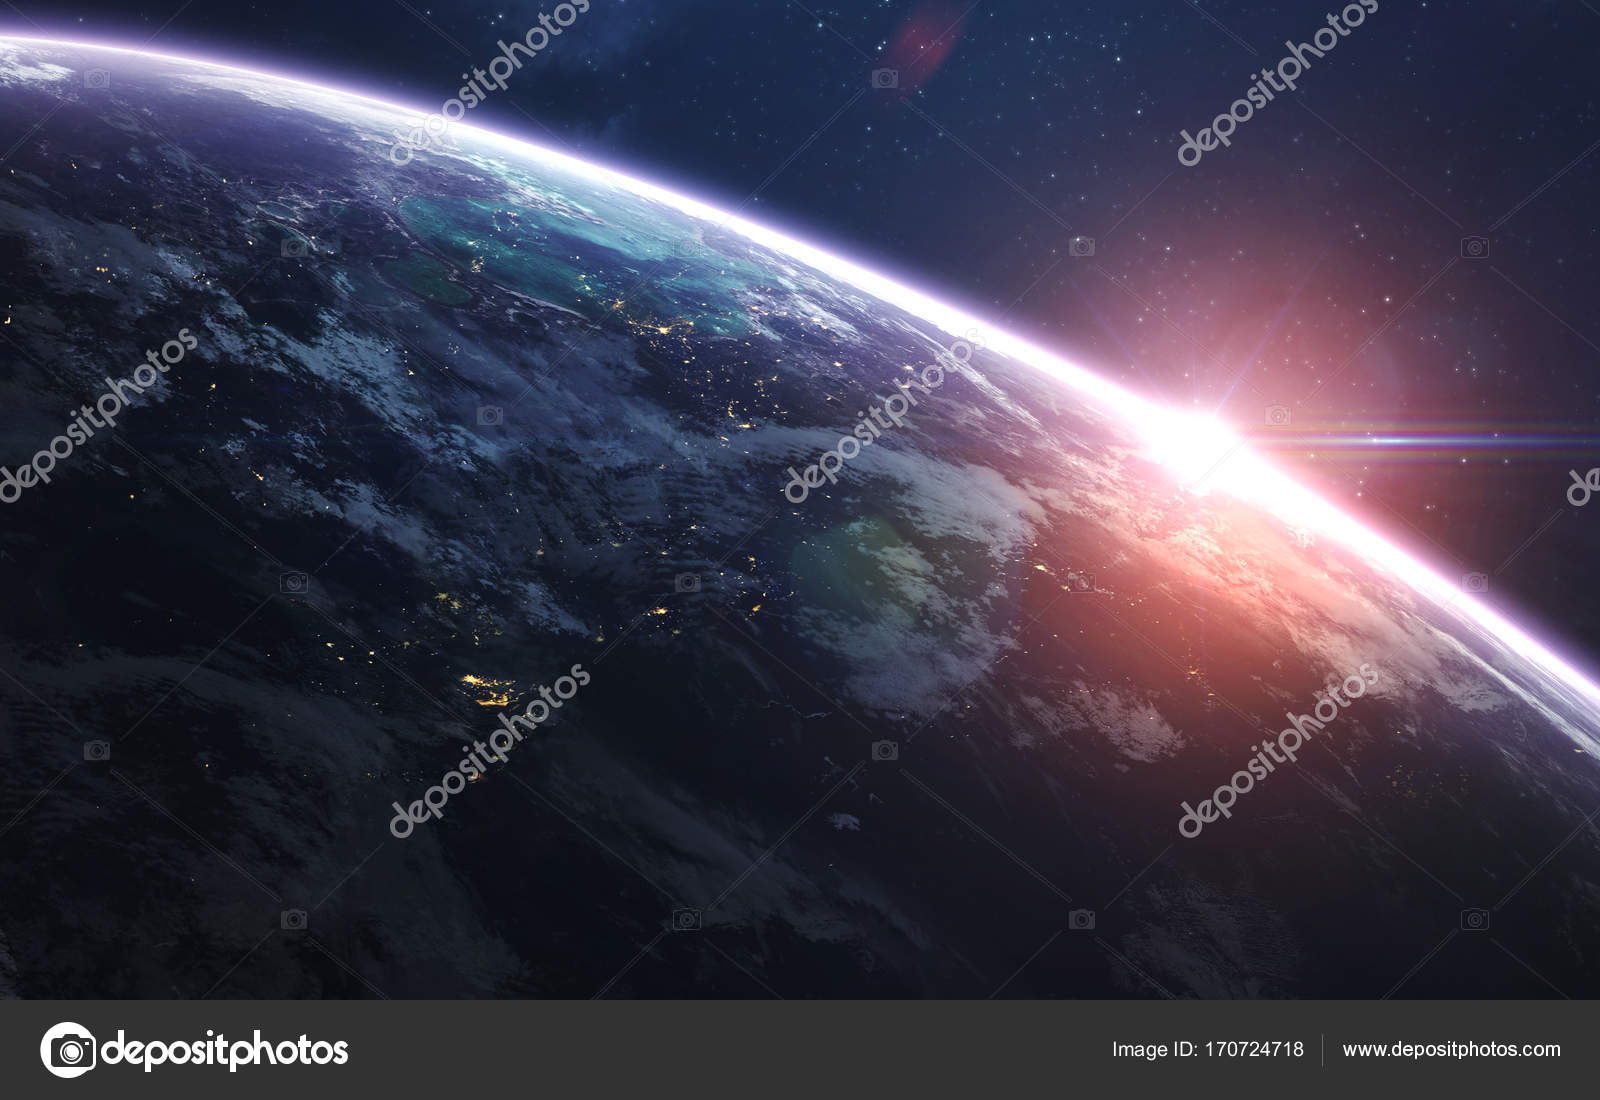 Earth Abstract Space Wallpaper Universe Filled With Stars Nebulas